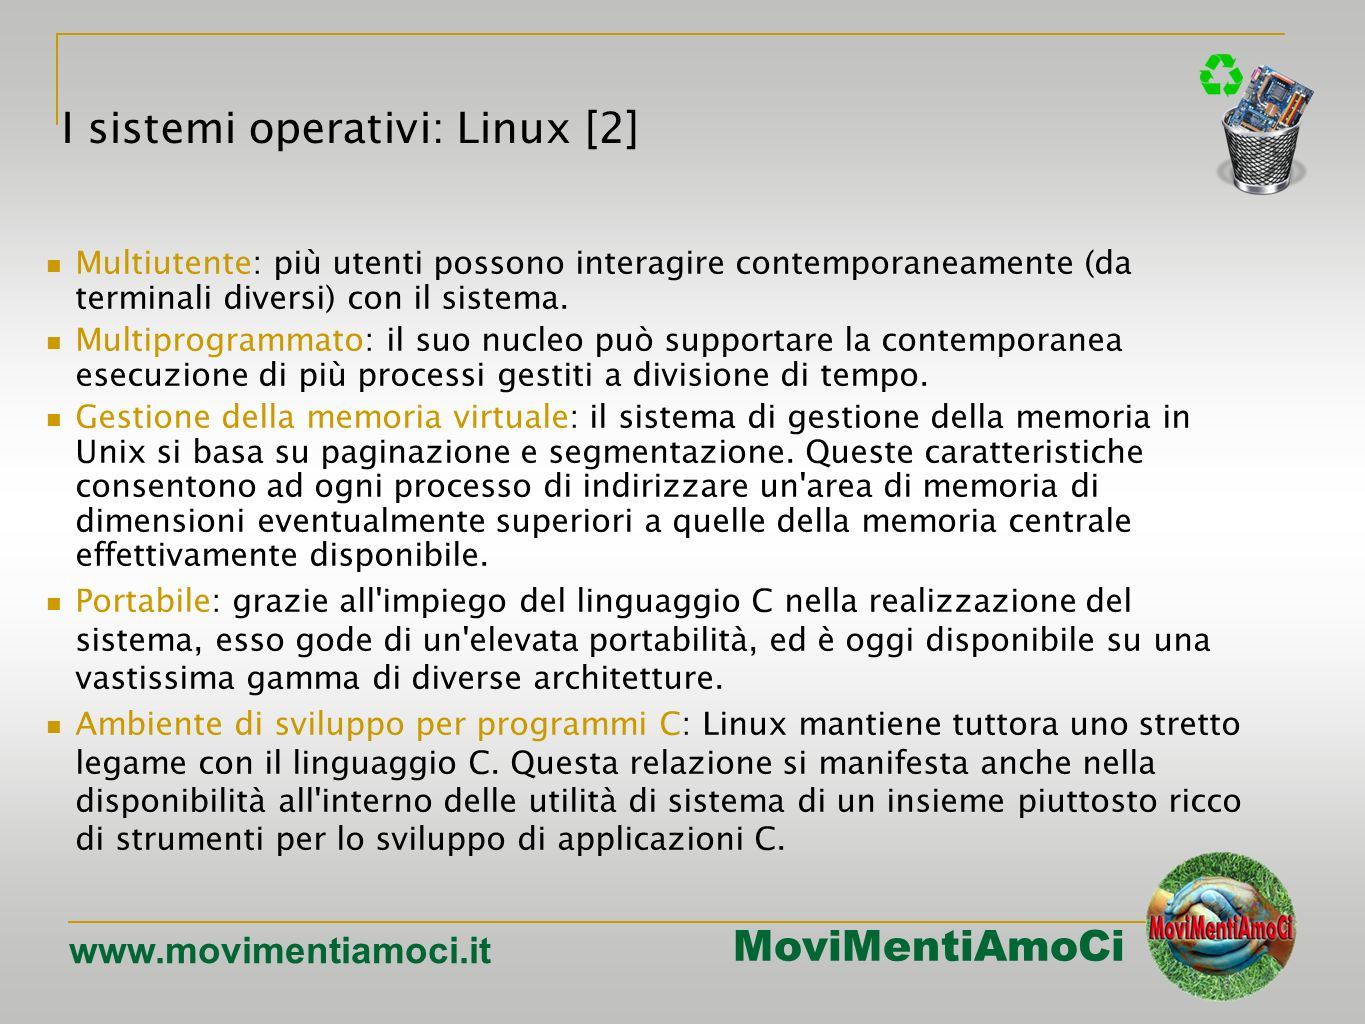 MoviMentiAmoCi www.movimentiamoci.it Multiutente: più utenti possono interagire contemporaneamente (da terminali diversi) con il sistema. Multiprogram